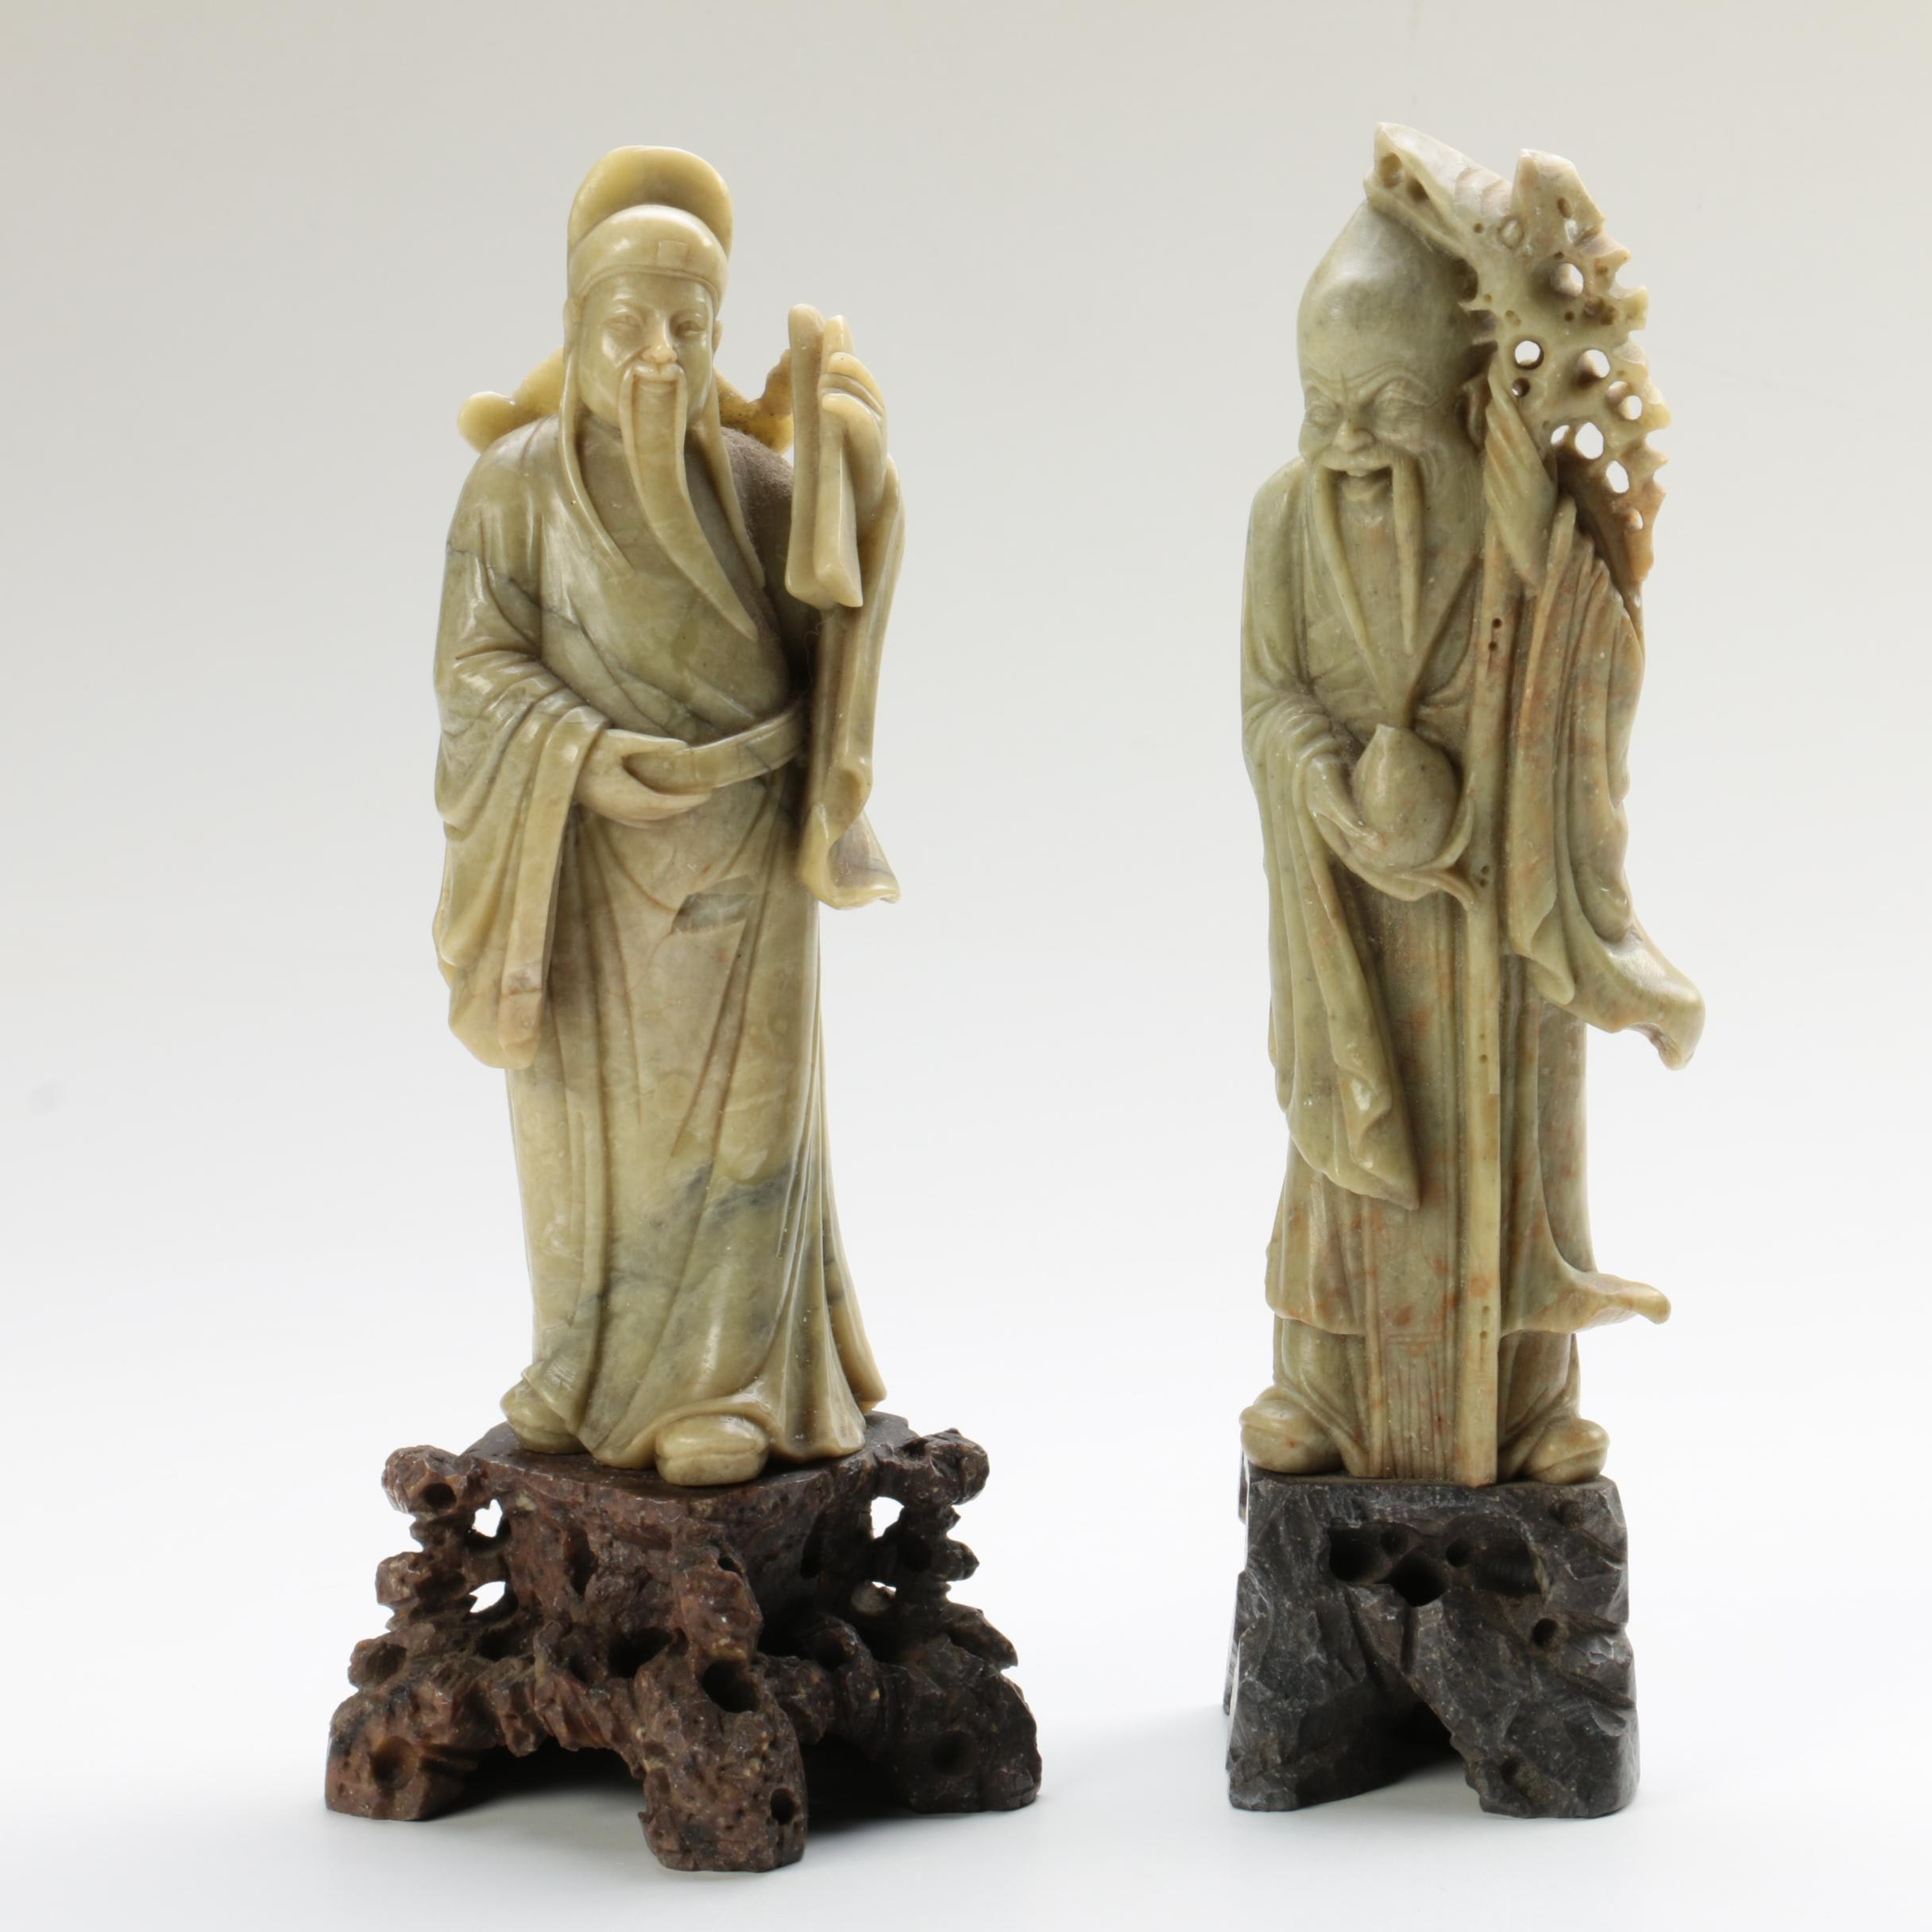 Chinese Soapstone Figurines of Gods of Longevity and Good Fortune